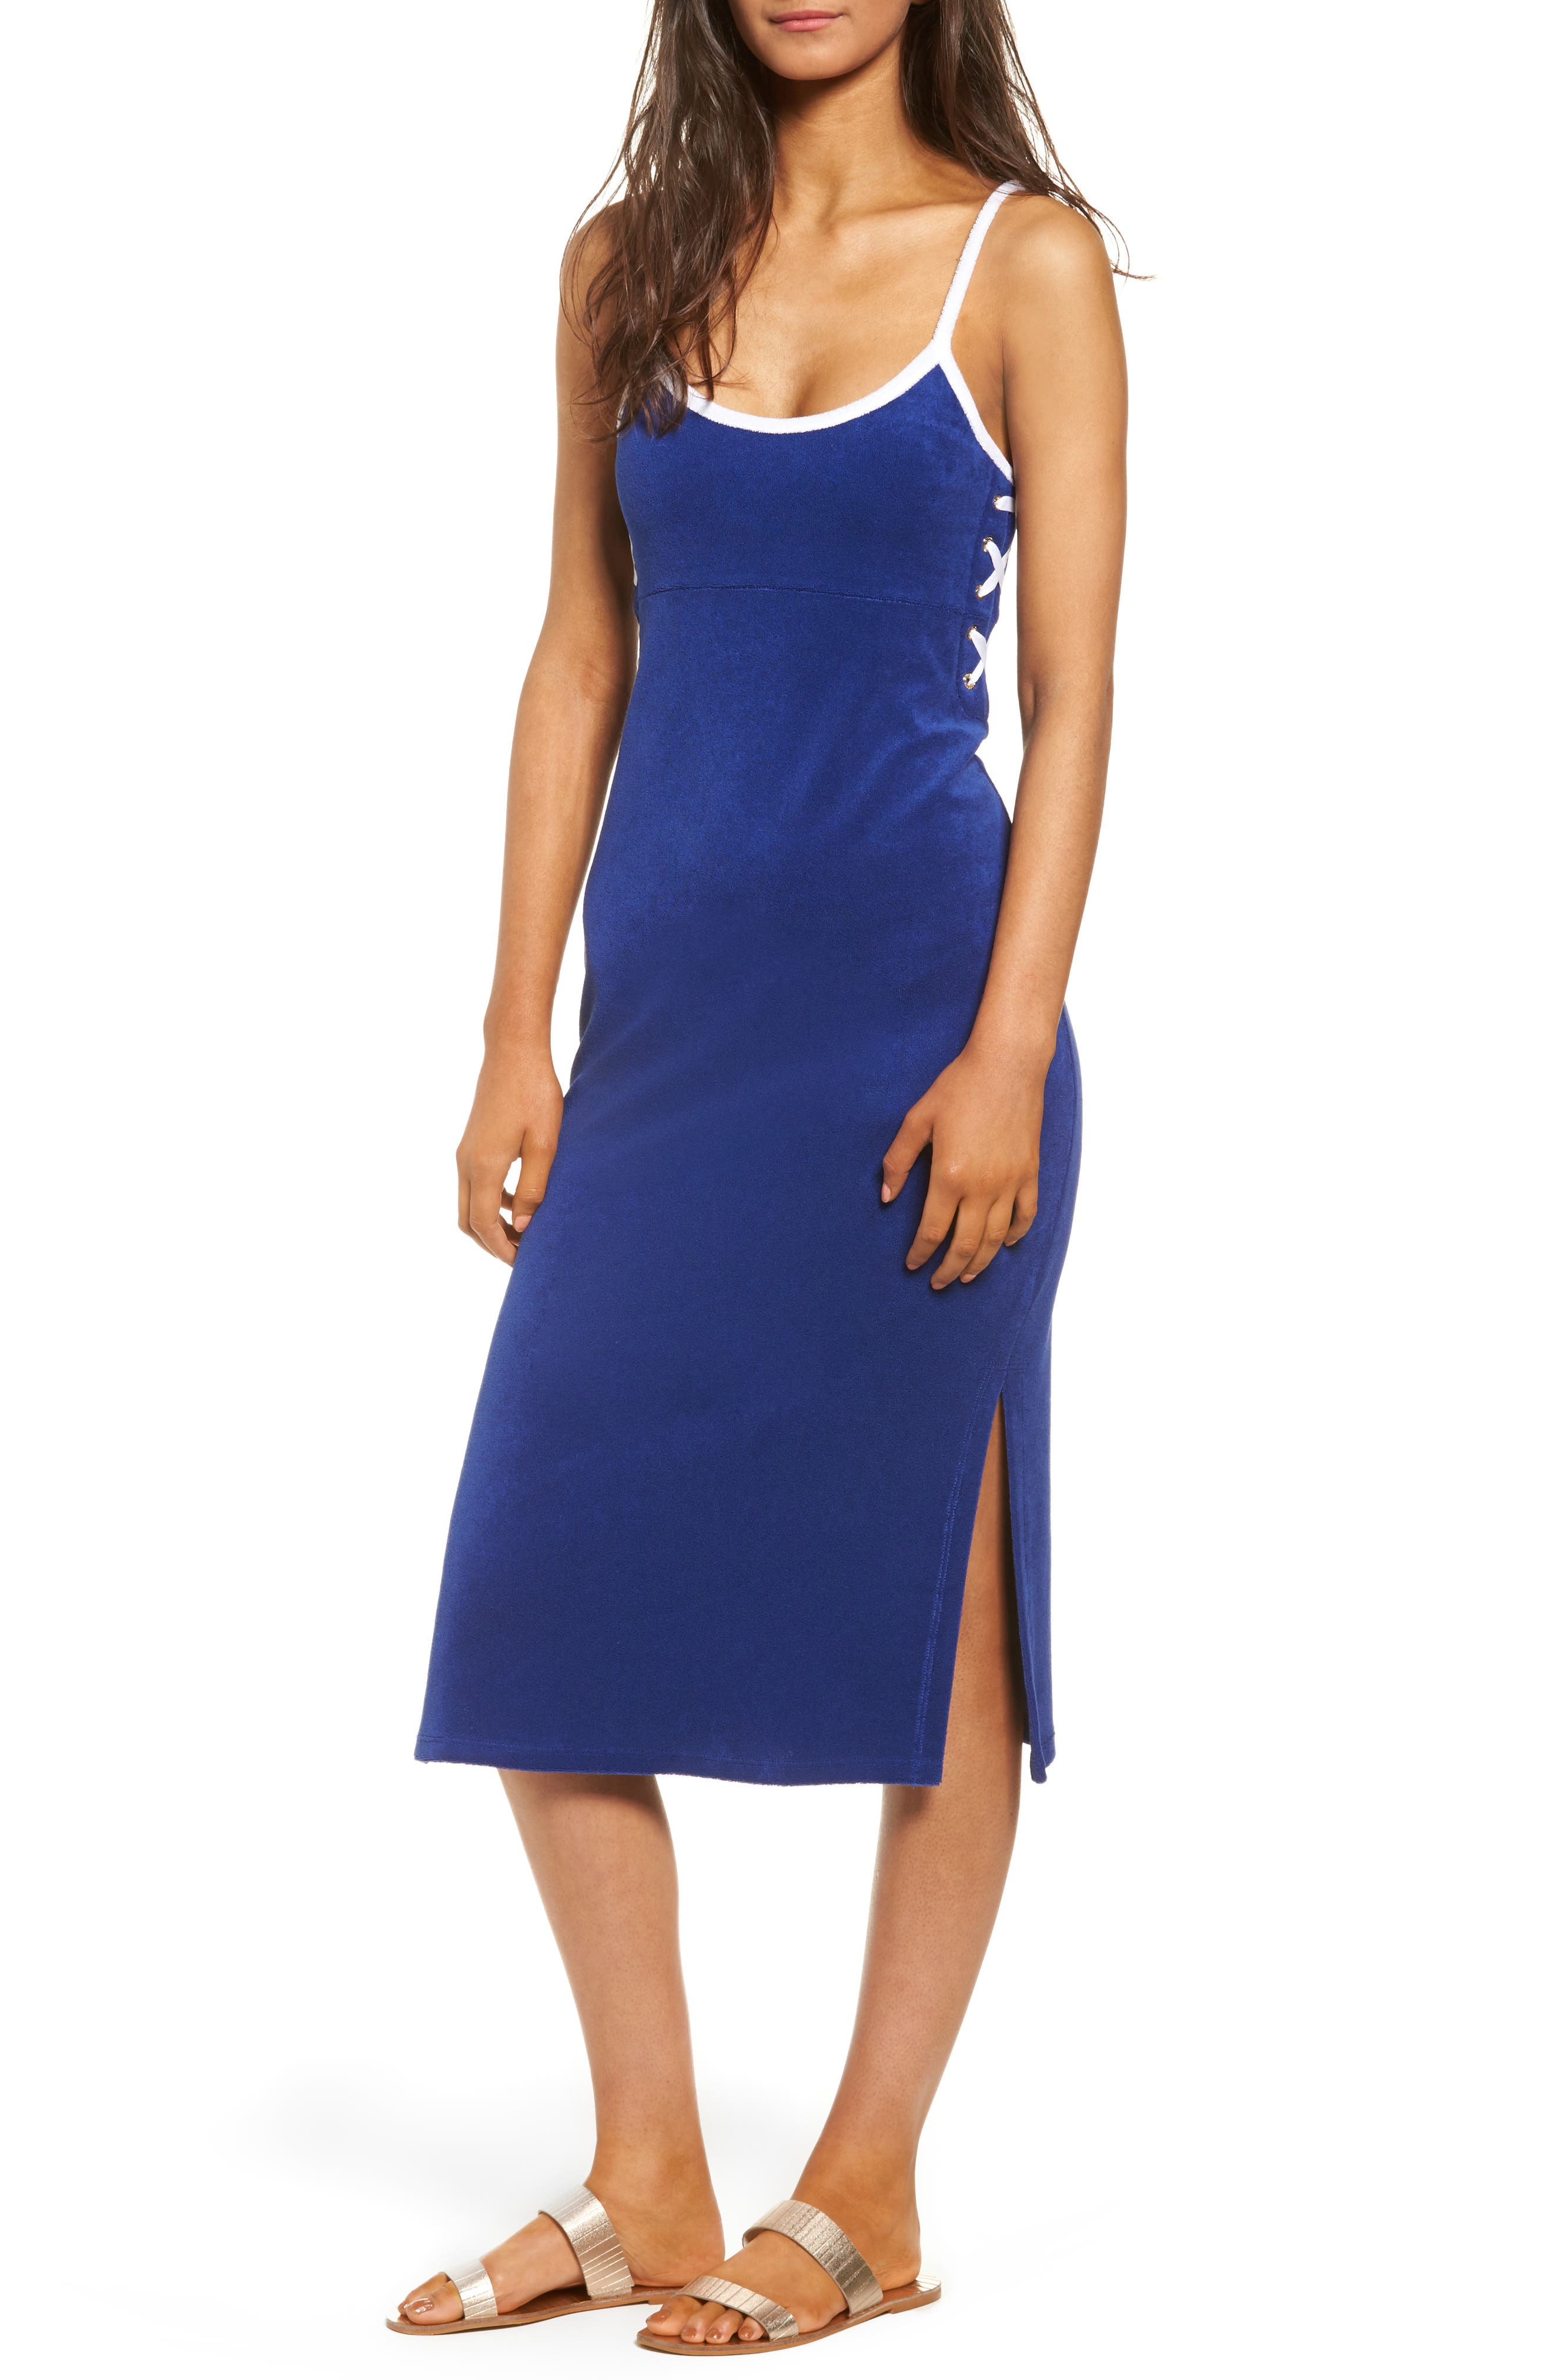 Juicy Couture Venice Beach Microterry Slipdress